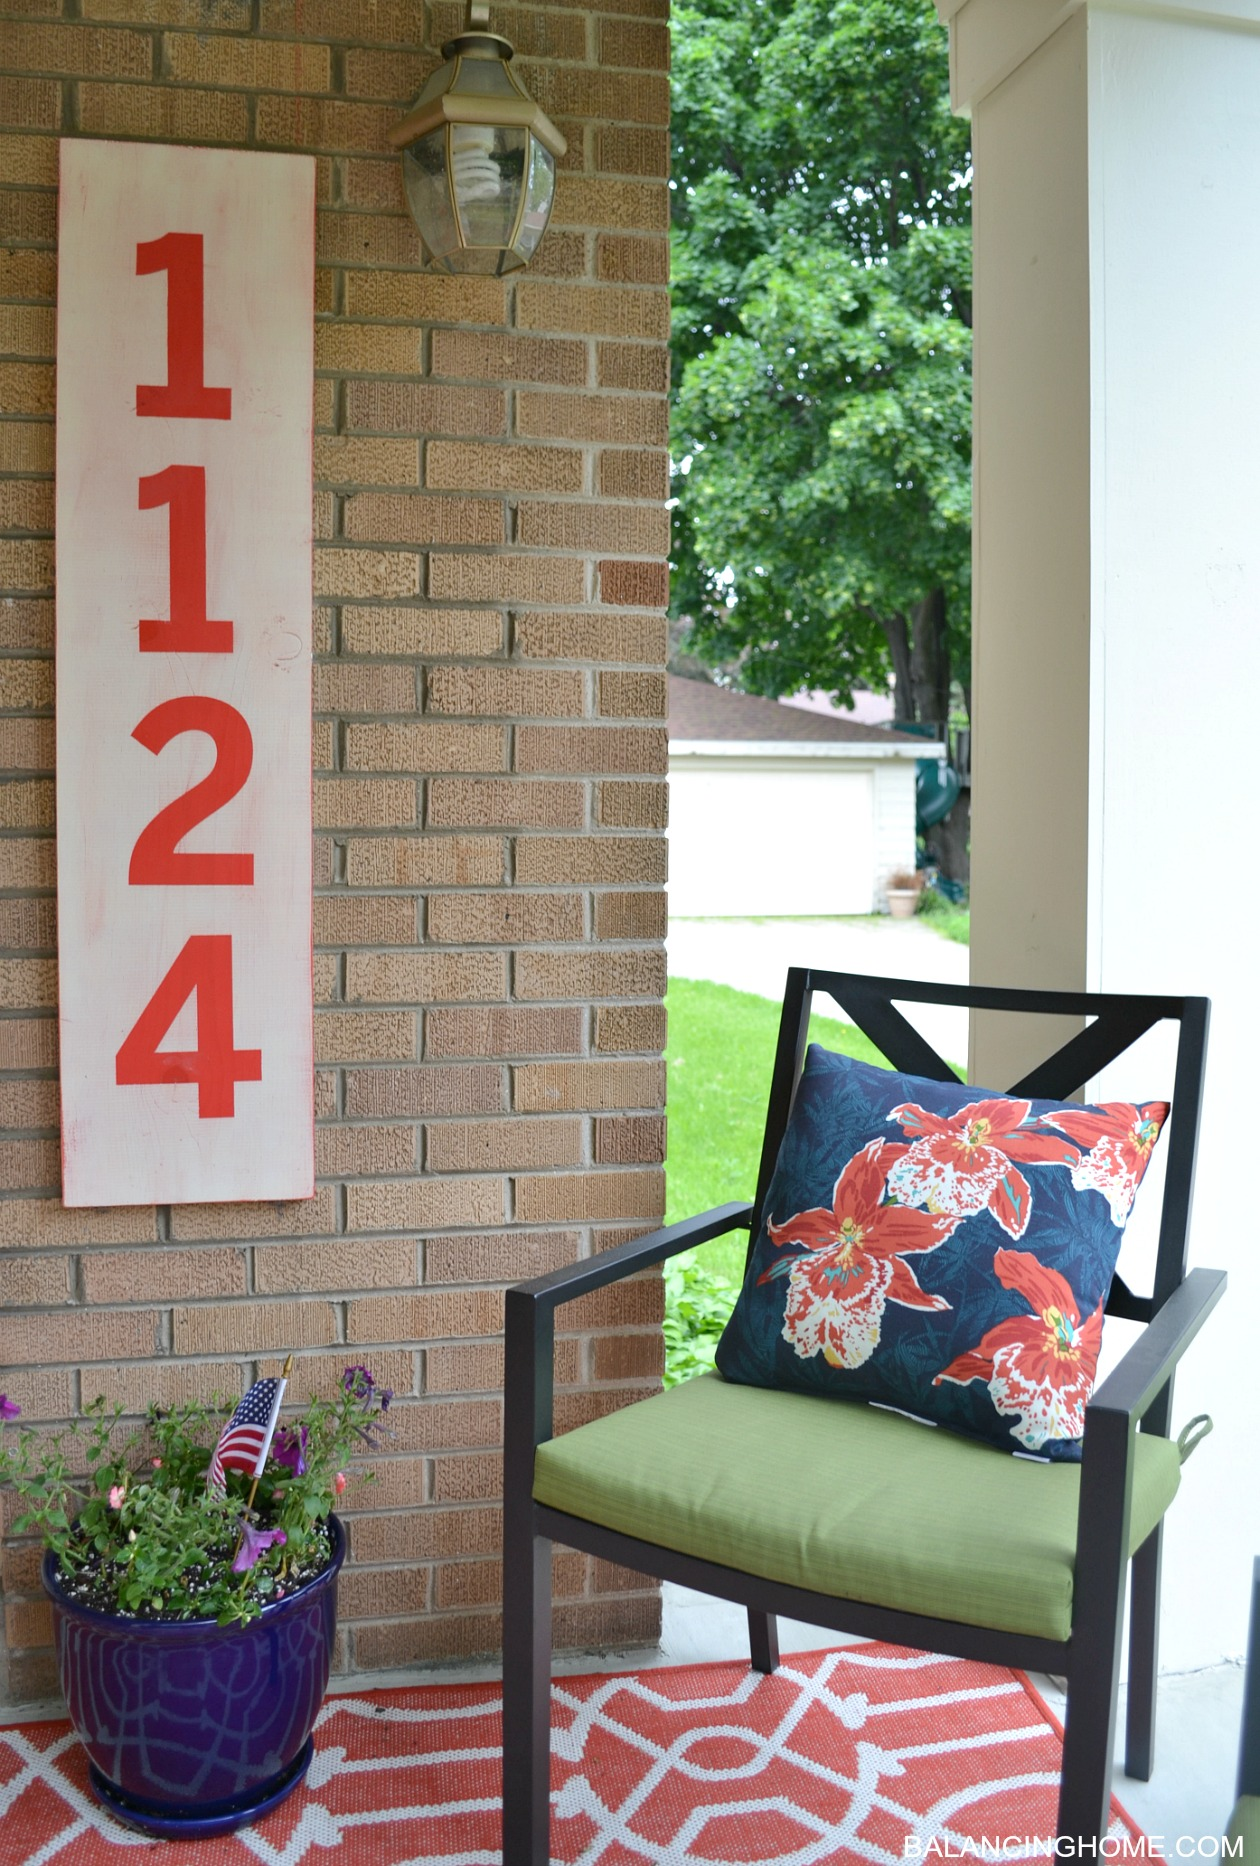 Porch Makeover Reveal & How DIY Street Number Sign - Balancing Home ...